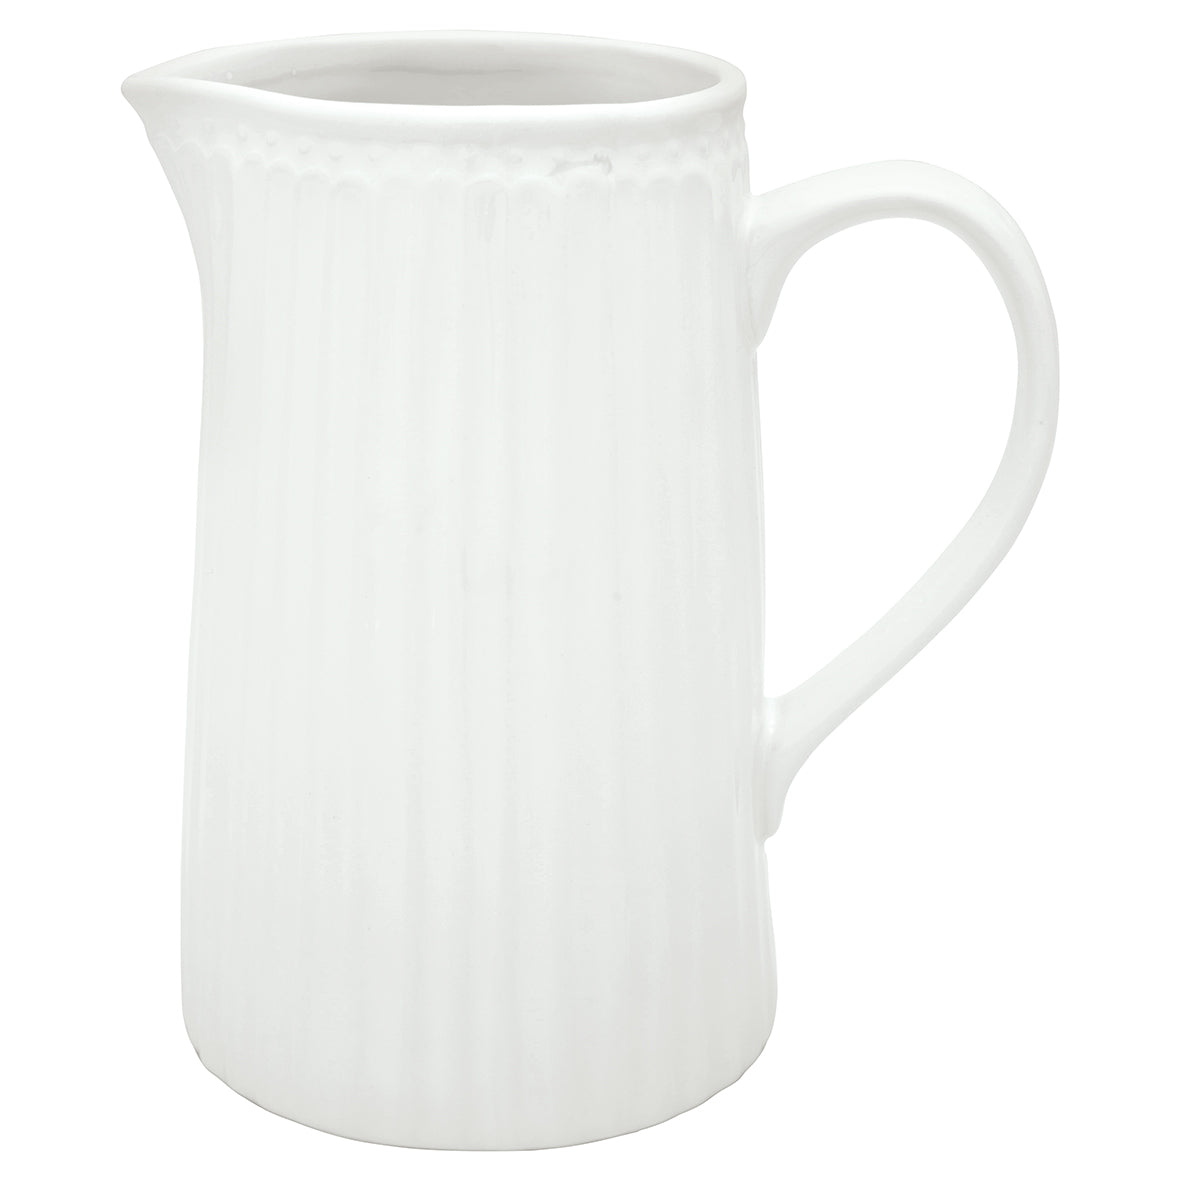 Greengate-Krug-Jug-Alice-Everyday-white